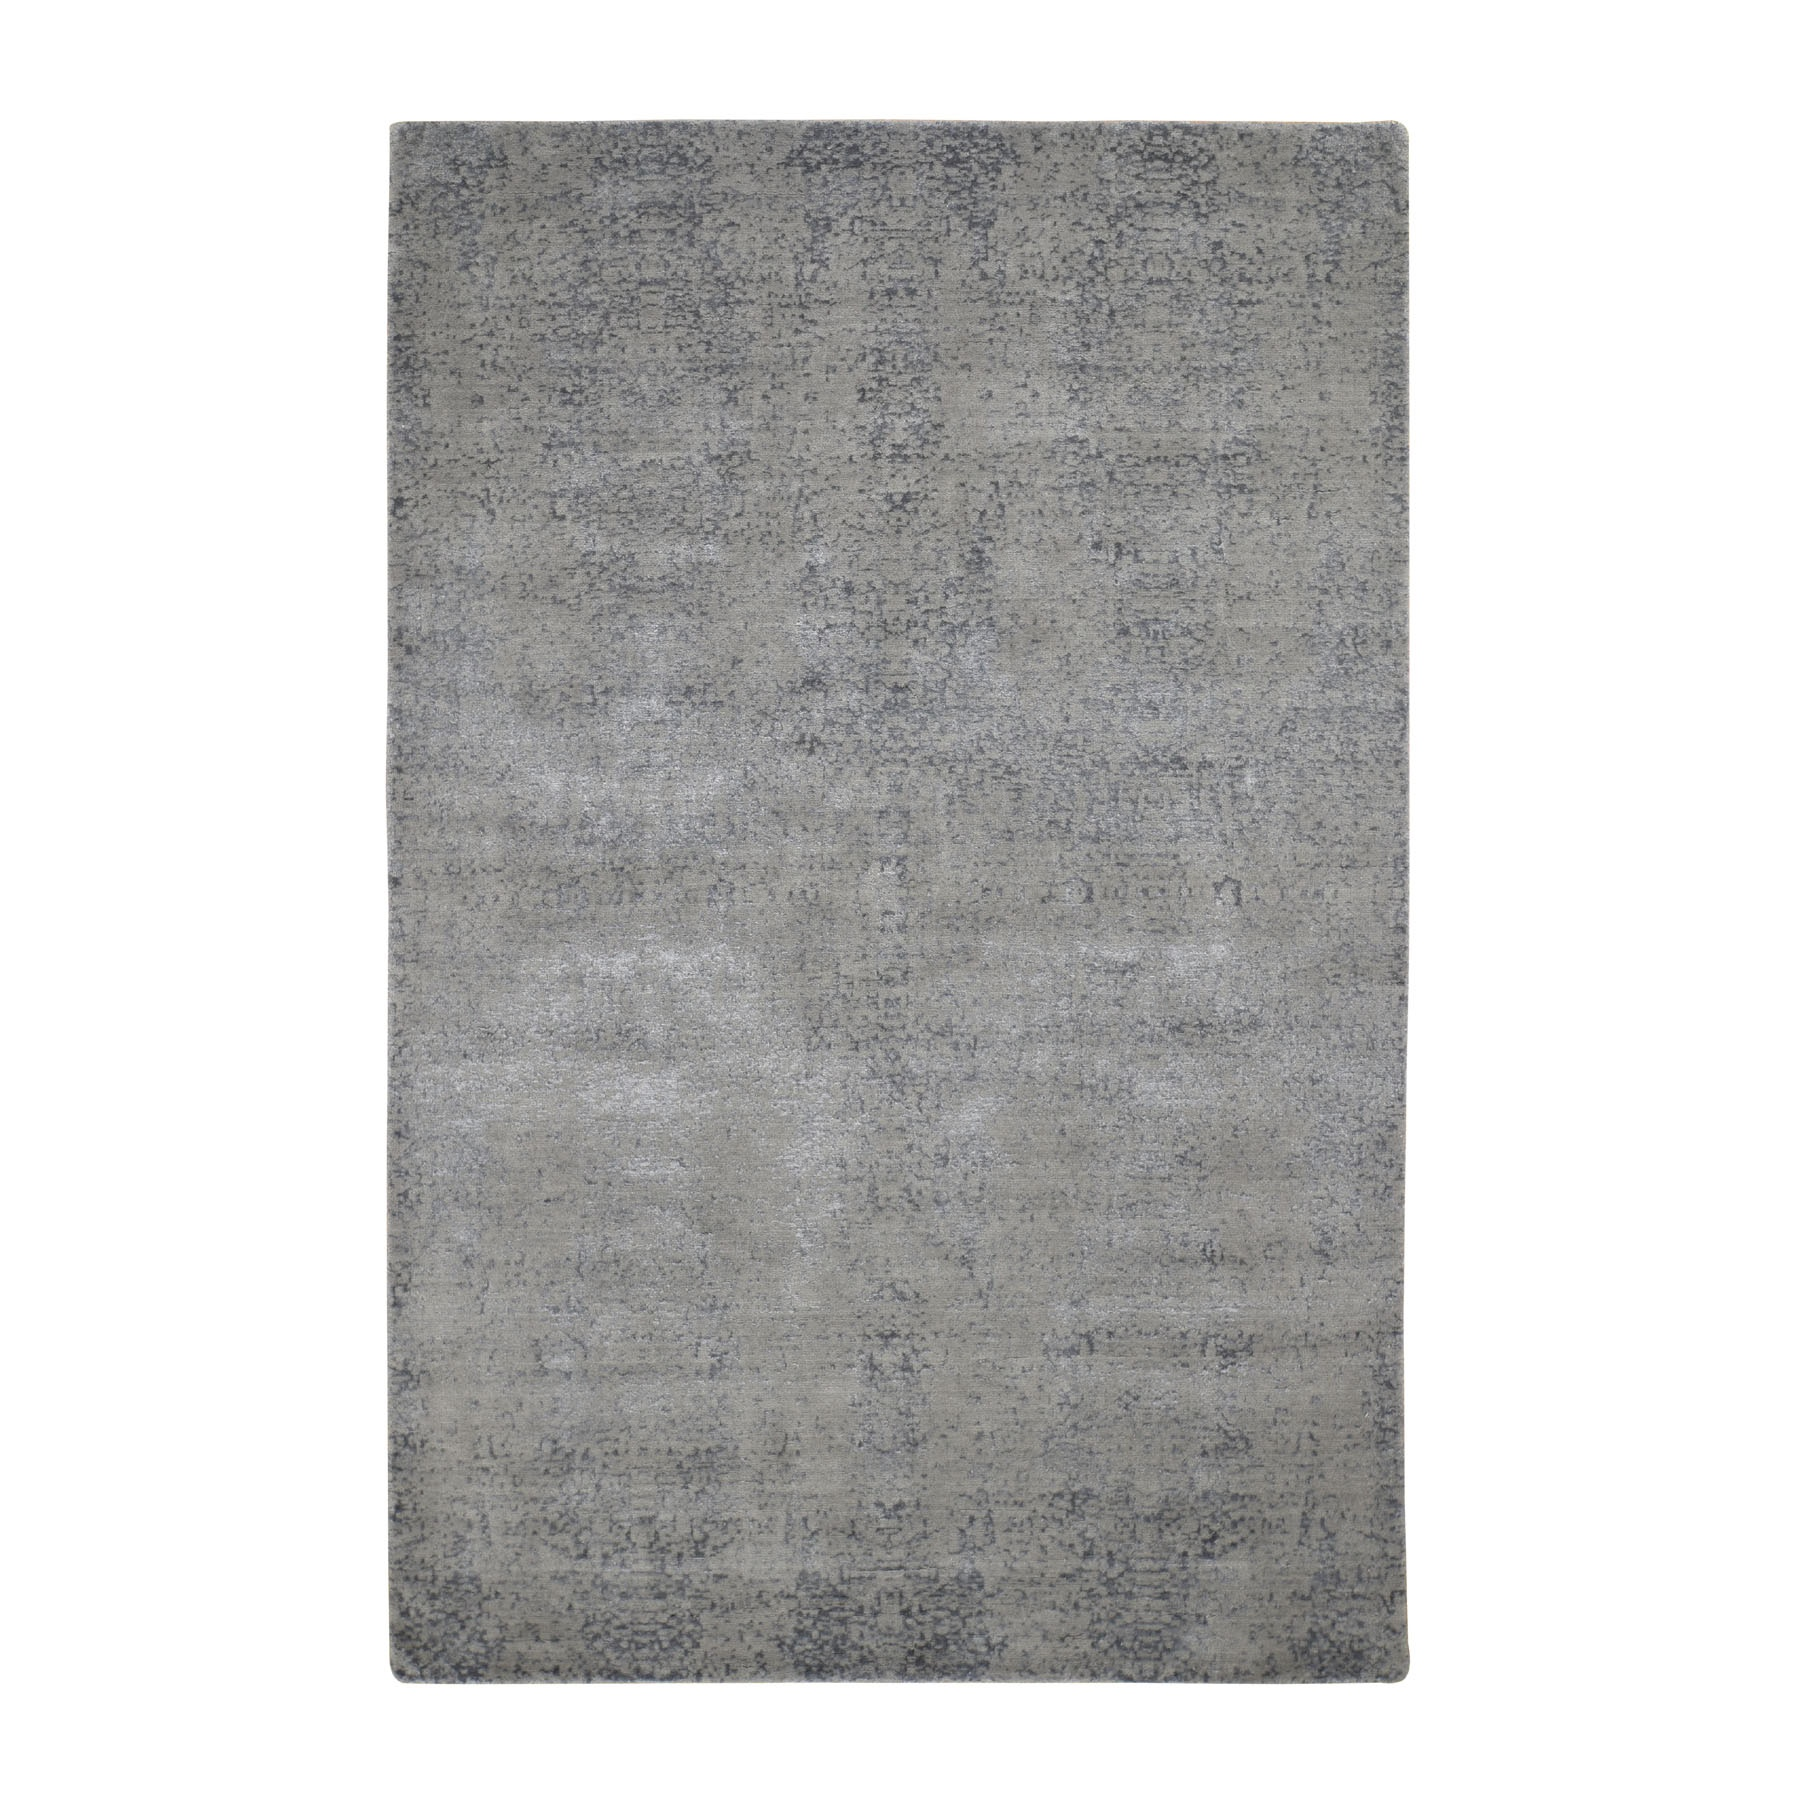 6'X9' Gray Abstract Design Wool And Silk Hand Loomed Oriental Rug moad8b7d